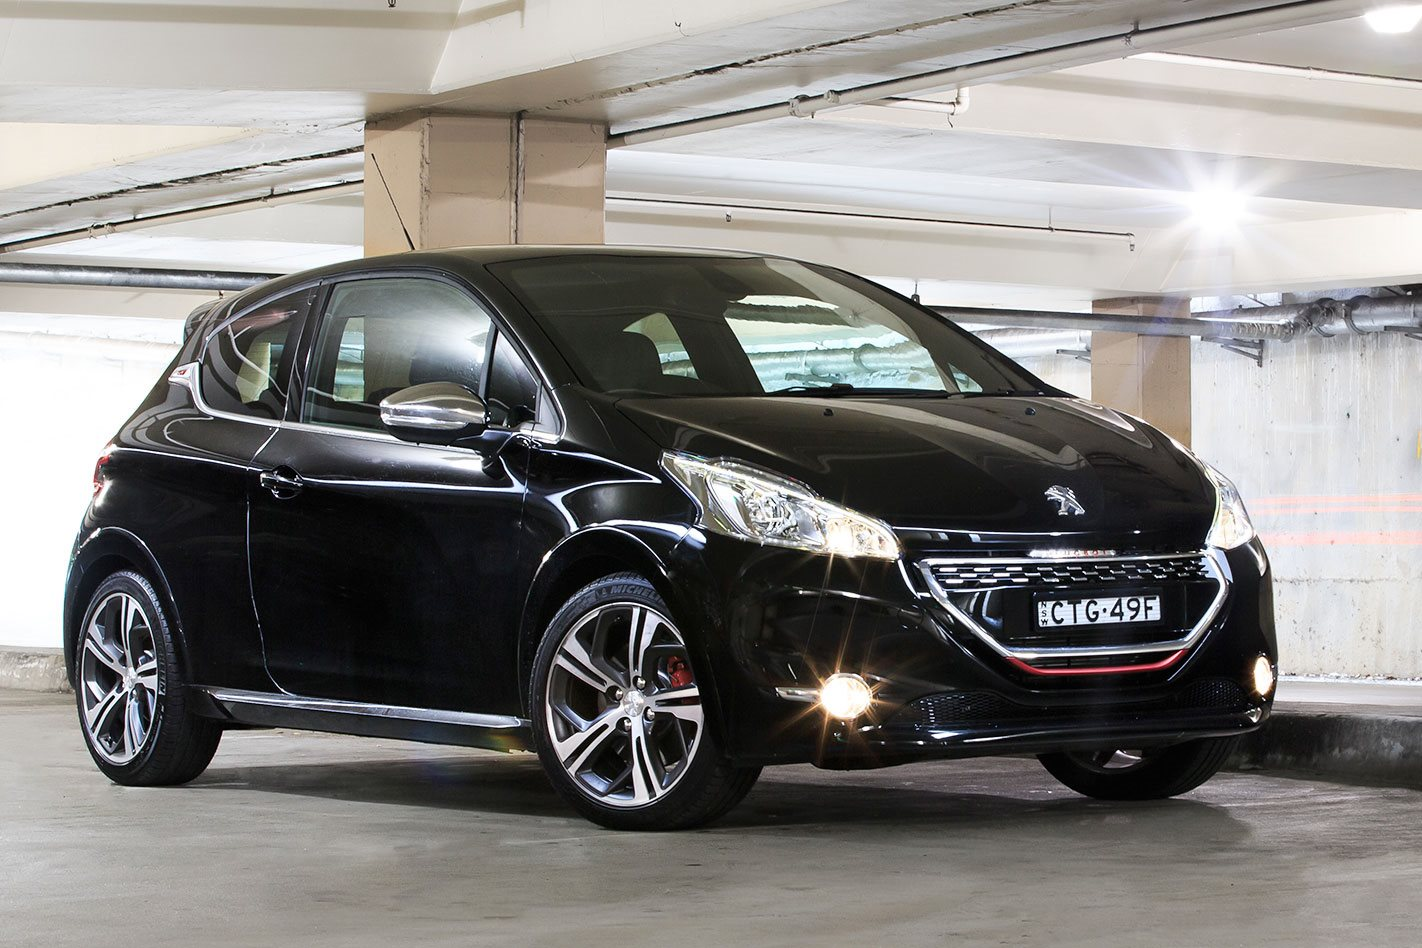 2014 peugeot 208 gti long term car review part 1. Black Bedroom Furniture Sets. Home Design Ideas